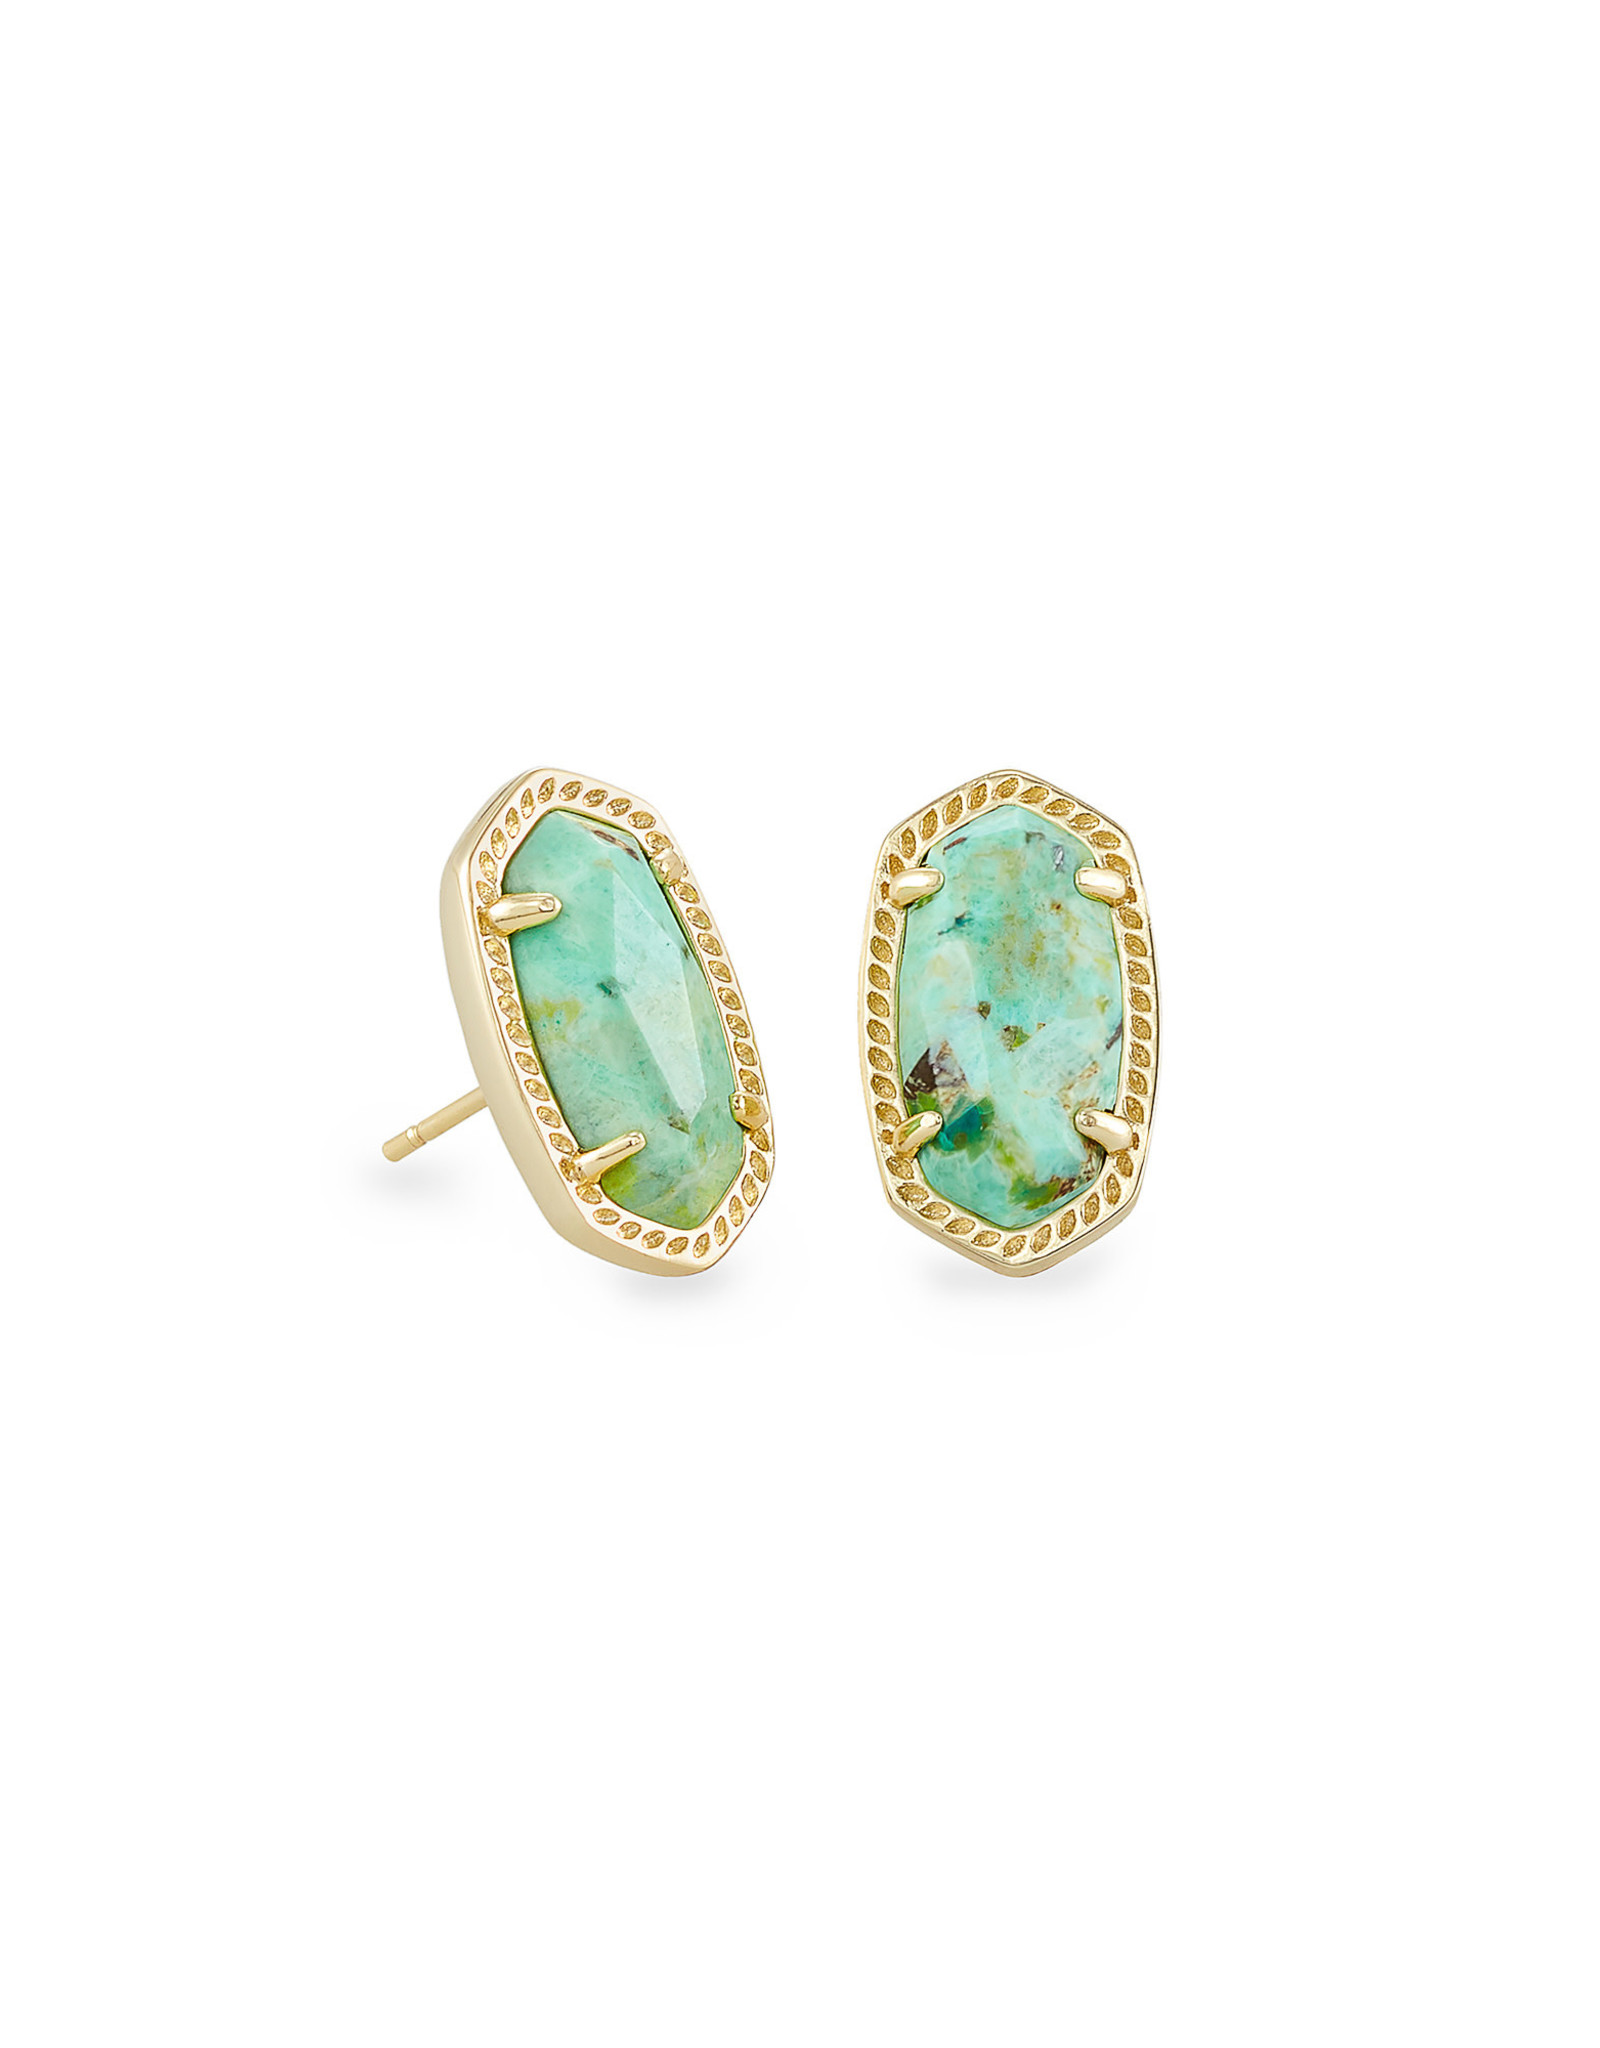 Kendra Scott Ellie Earring - Sea Green Chrysocolla/Gold